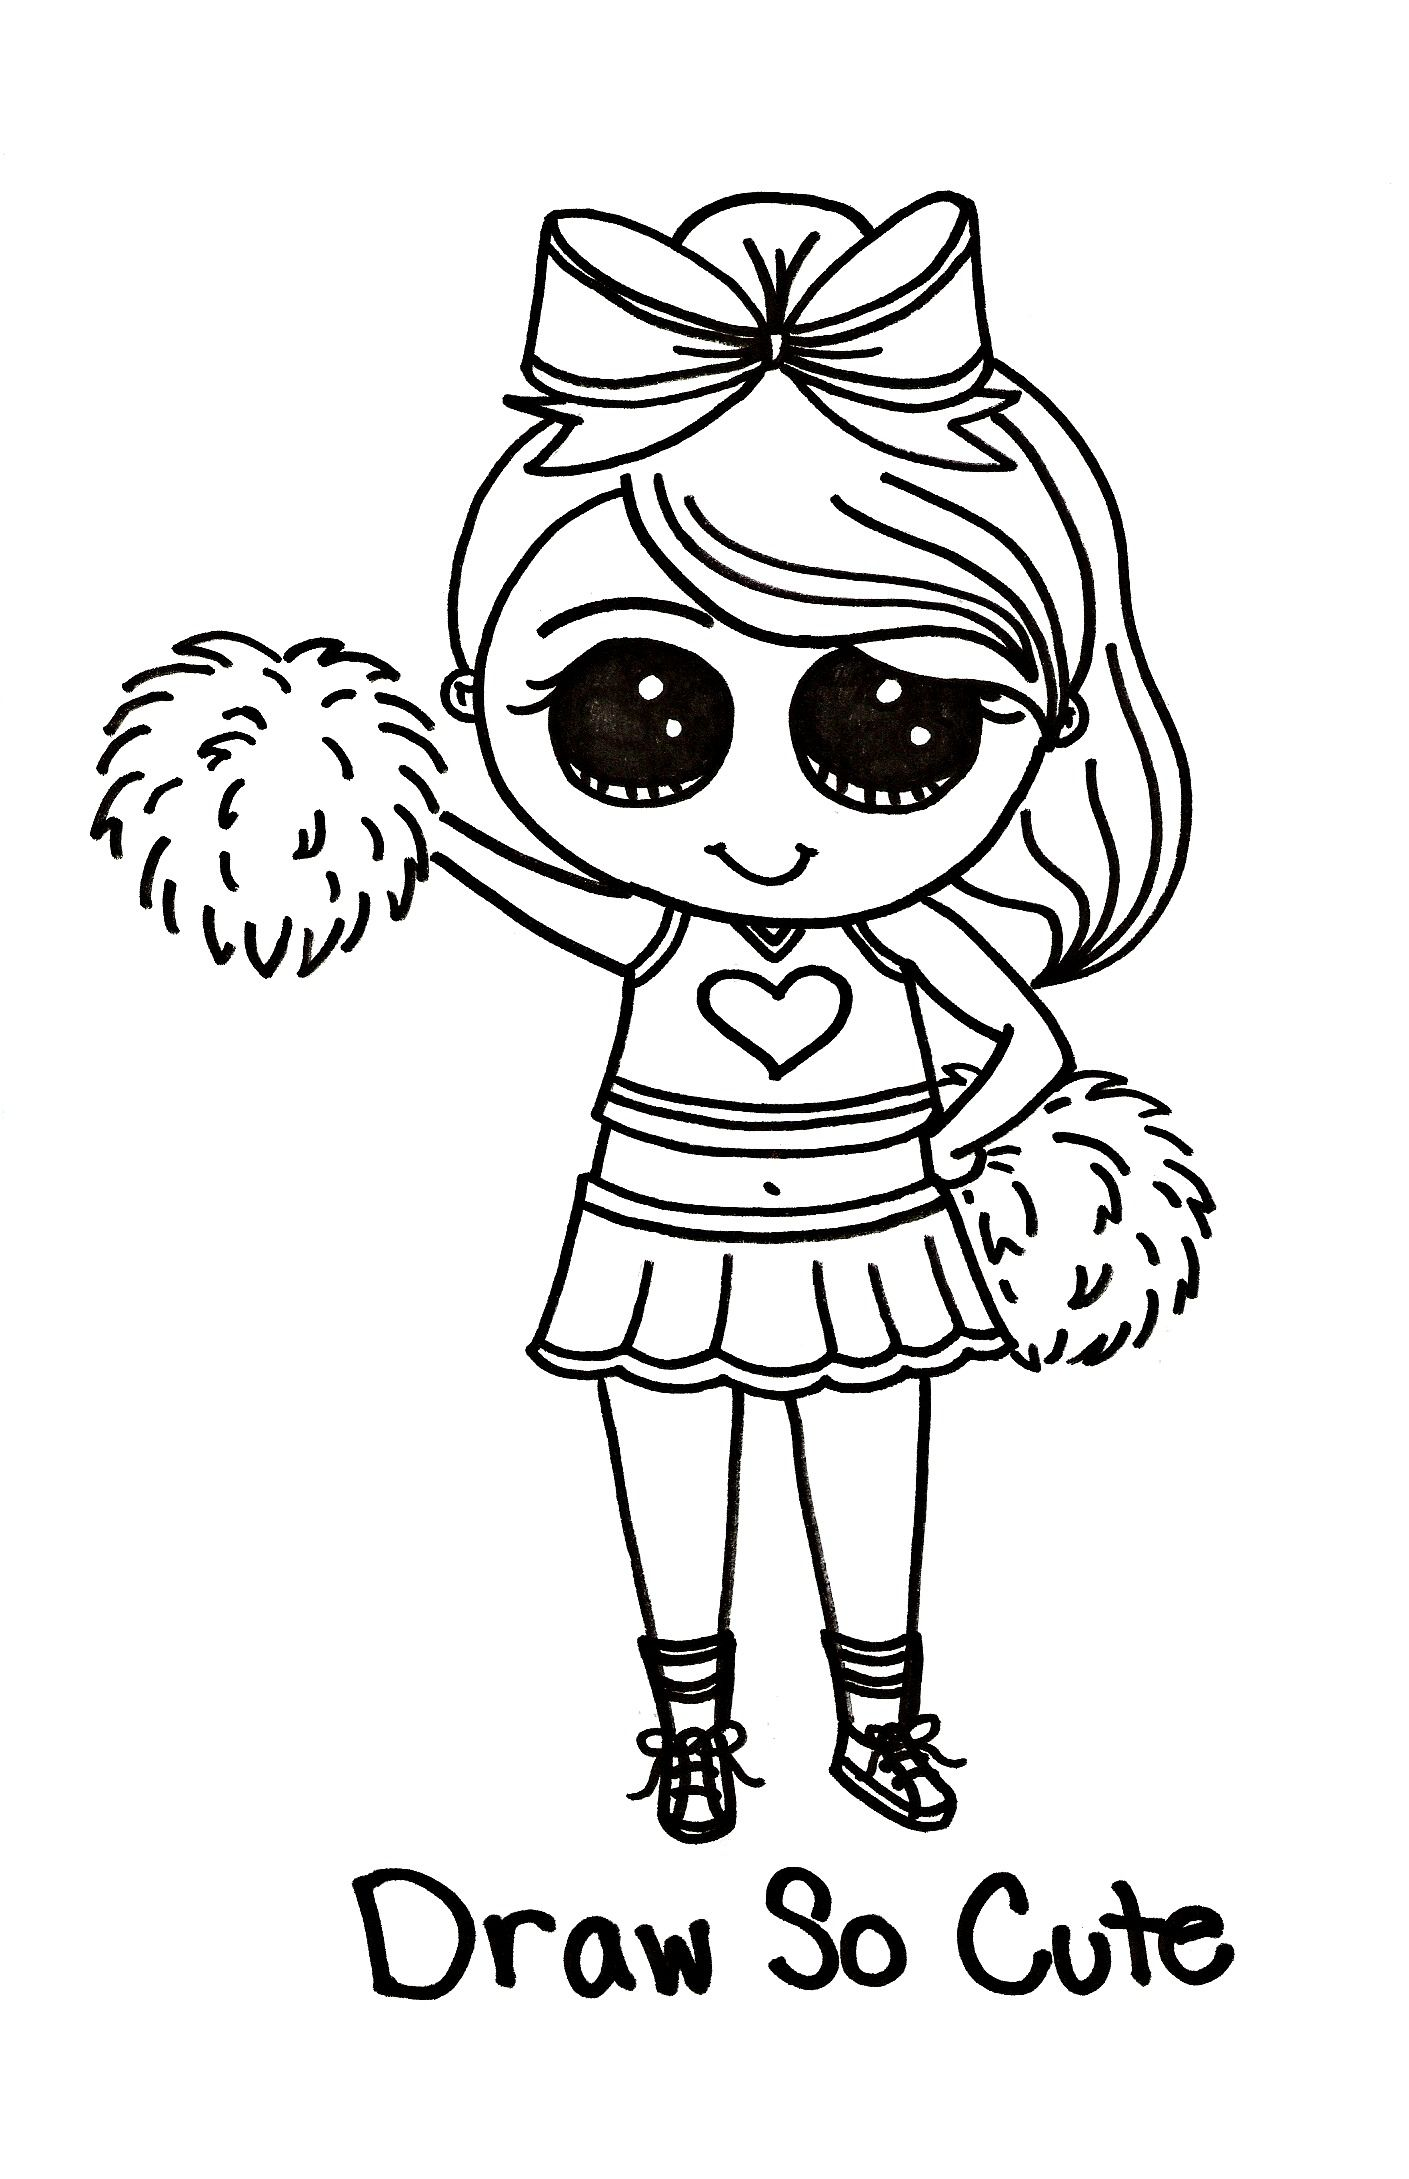 Draw So Cute Cheerleader Tipsy Scribbles A Picture Says A Thousand Words When Wine Loosens The Unicorn Coloring Pages Cute Coloring Pages Cat Coloring Page